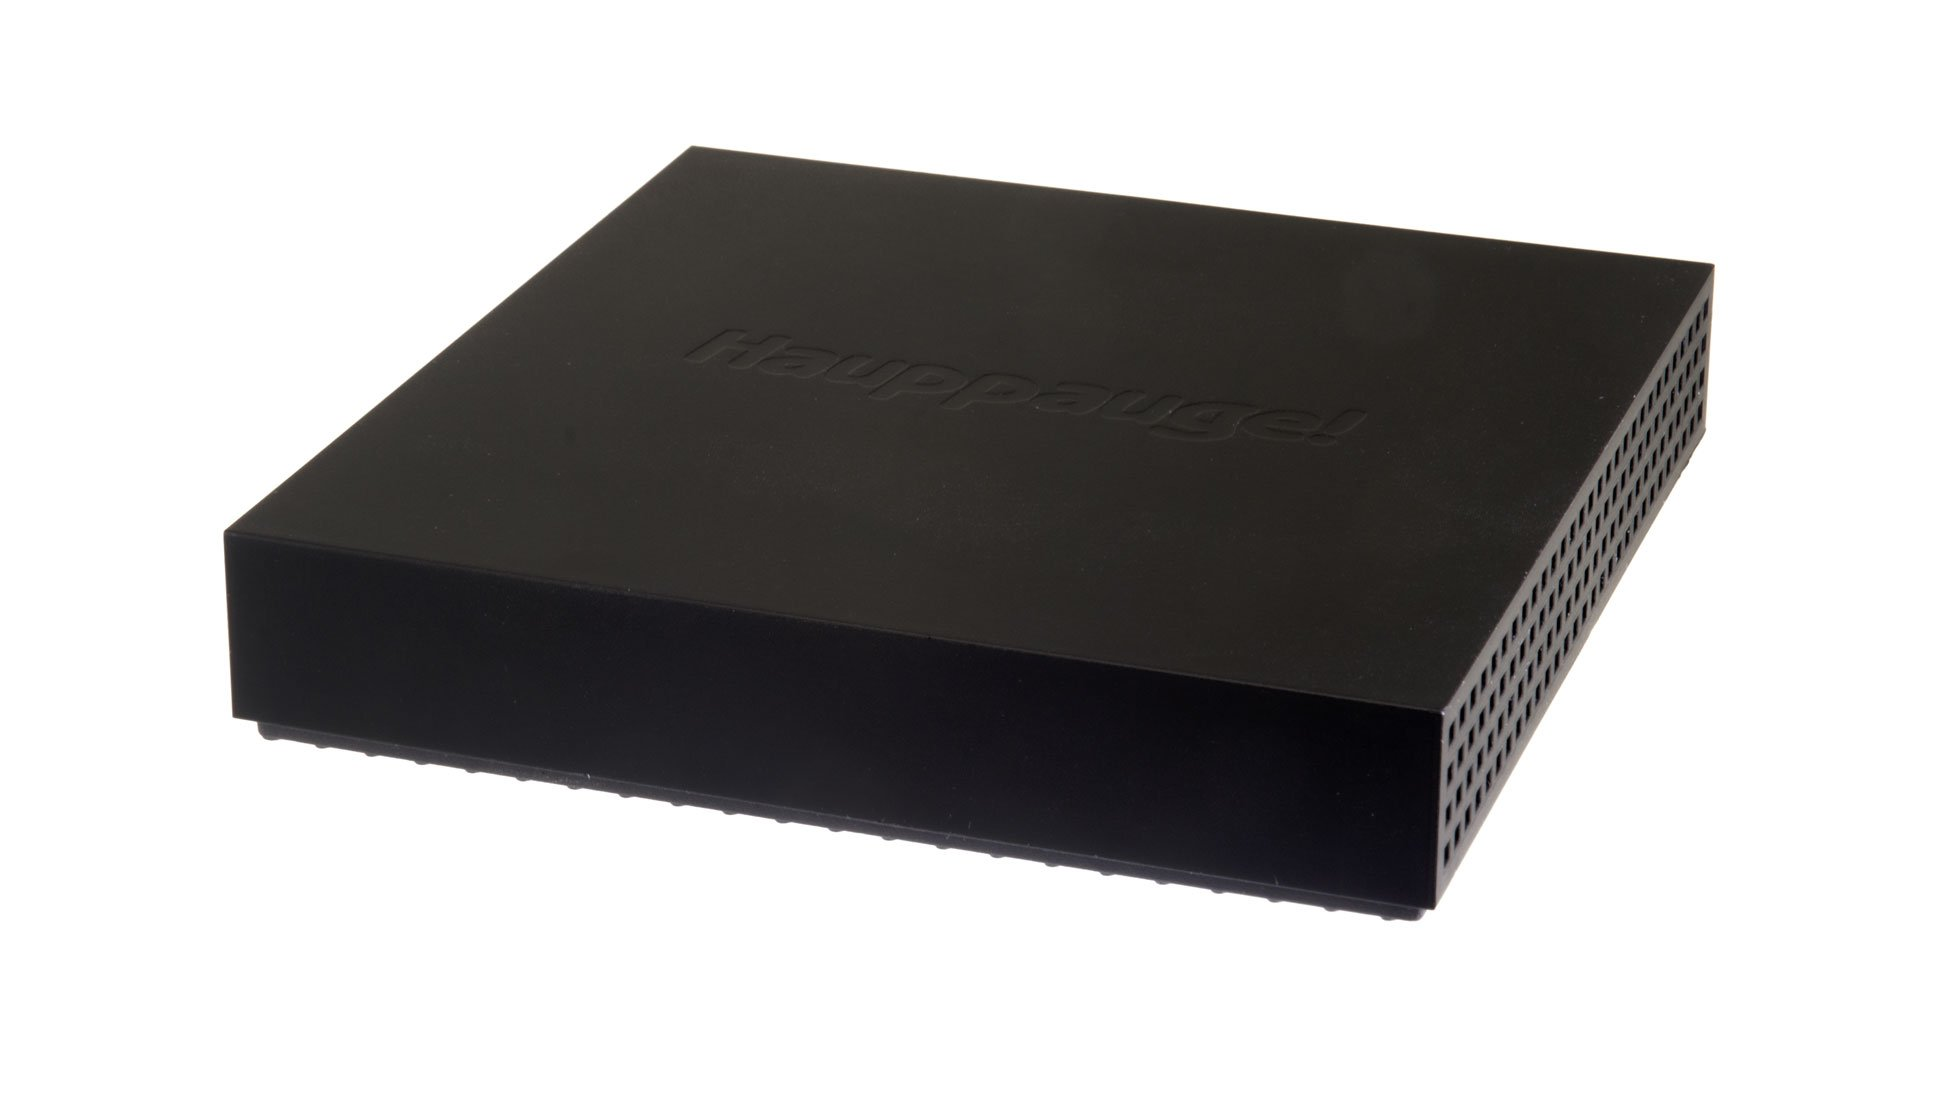 Hauppauge 1660 Broadway TV Wi-Fi Network TV Tuner for iPhones, iPads, Android Phones, Tablets and Media Players